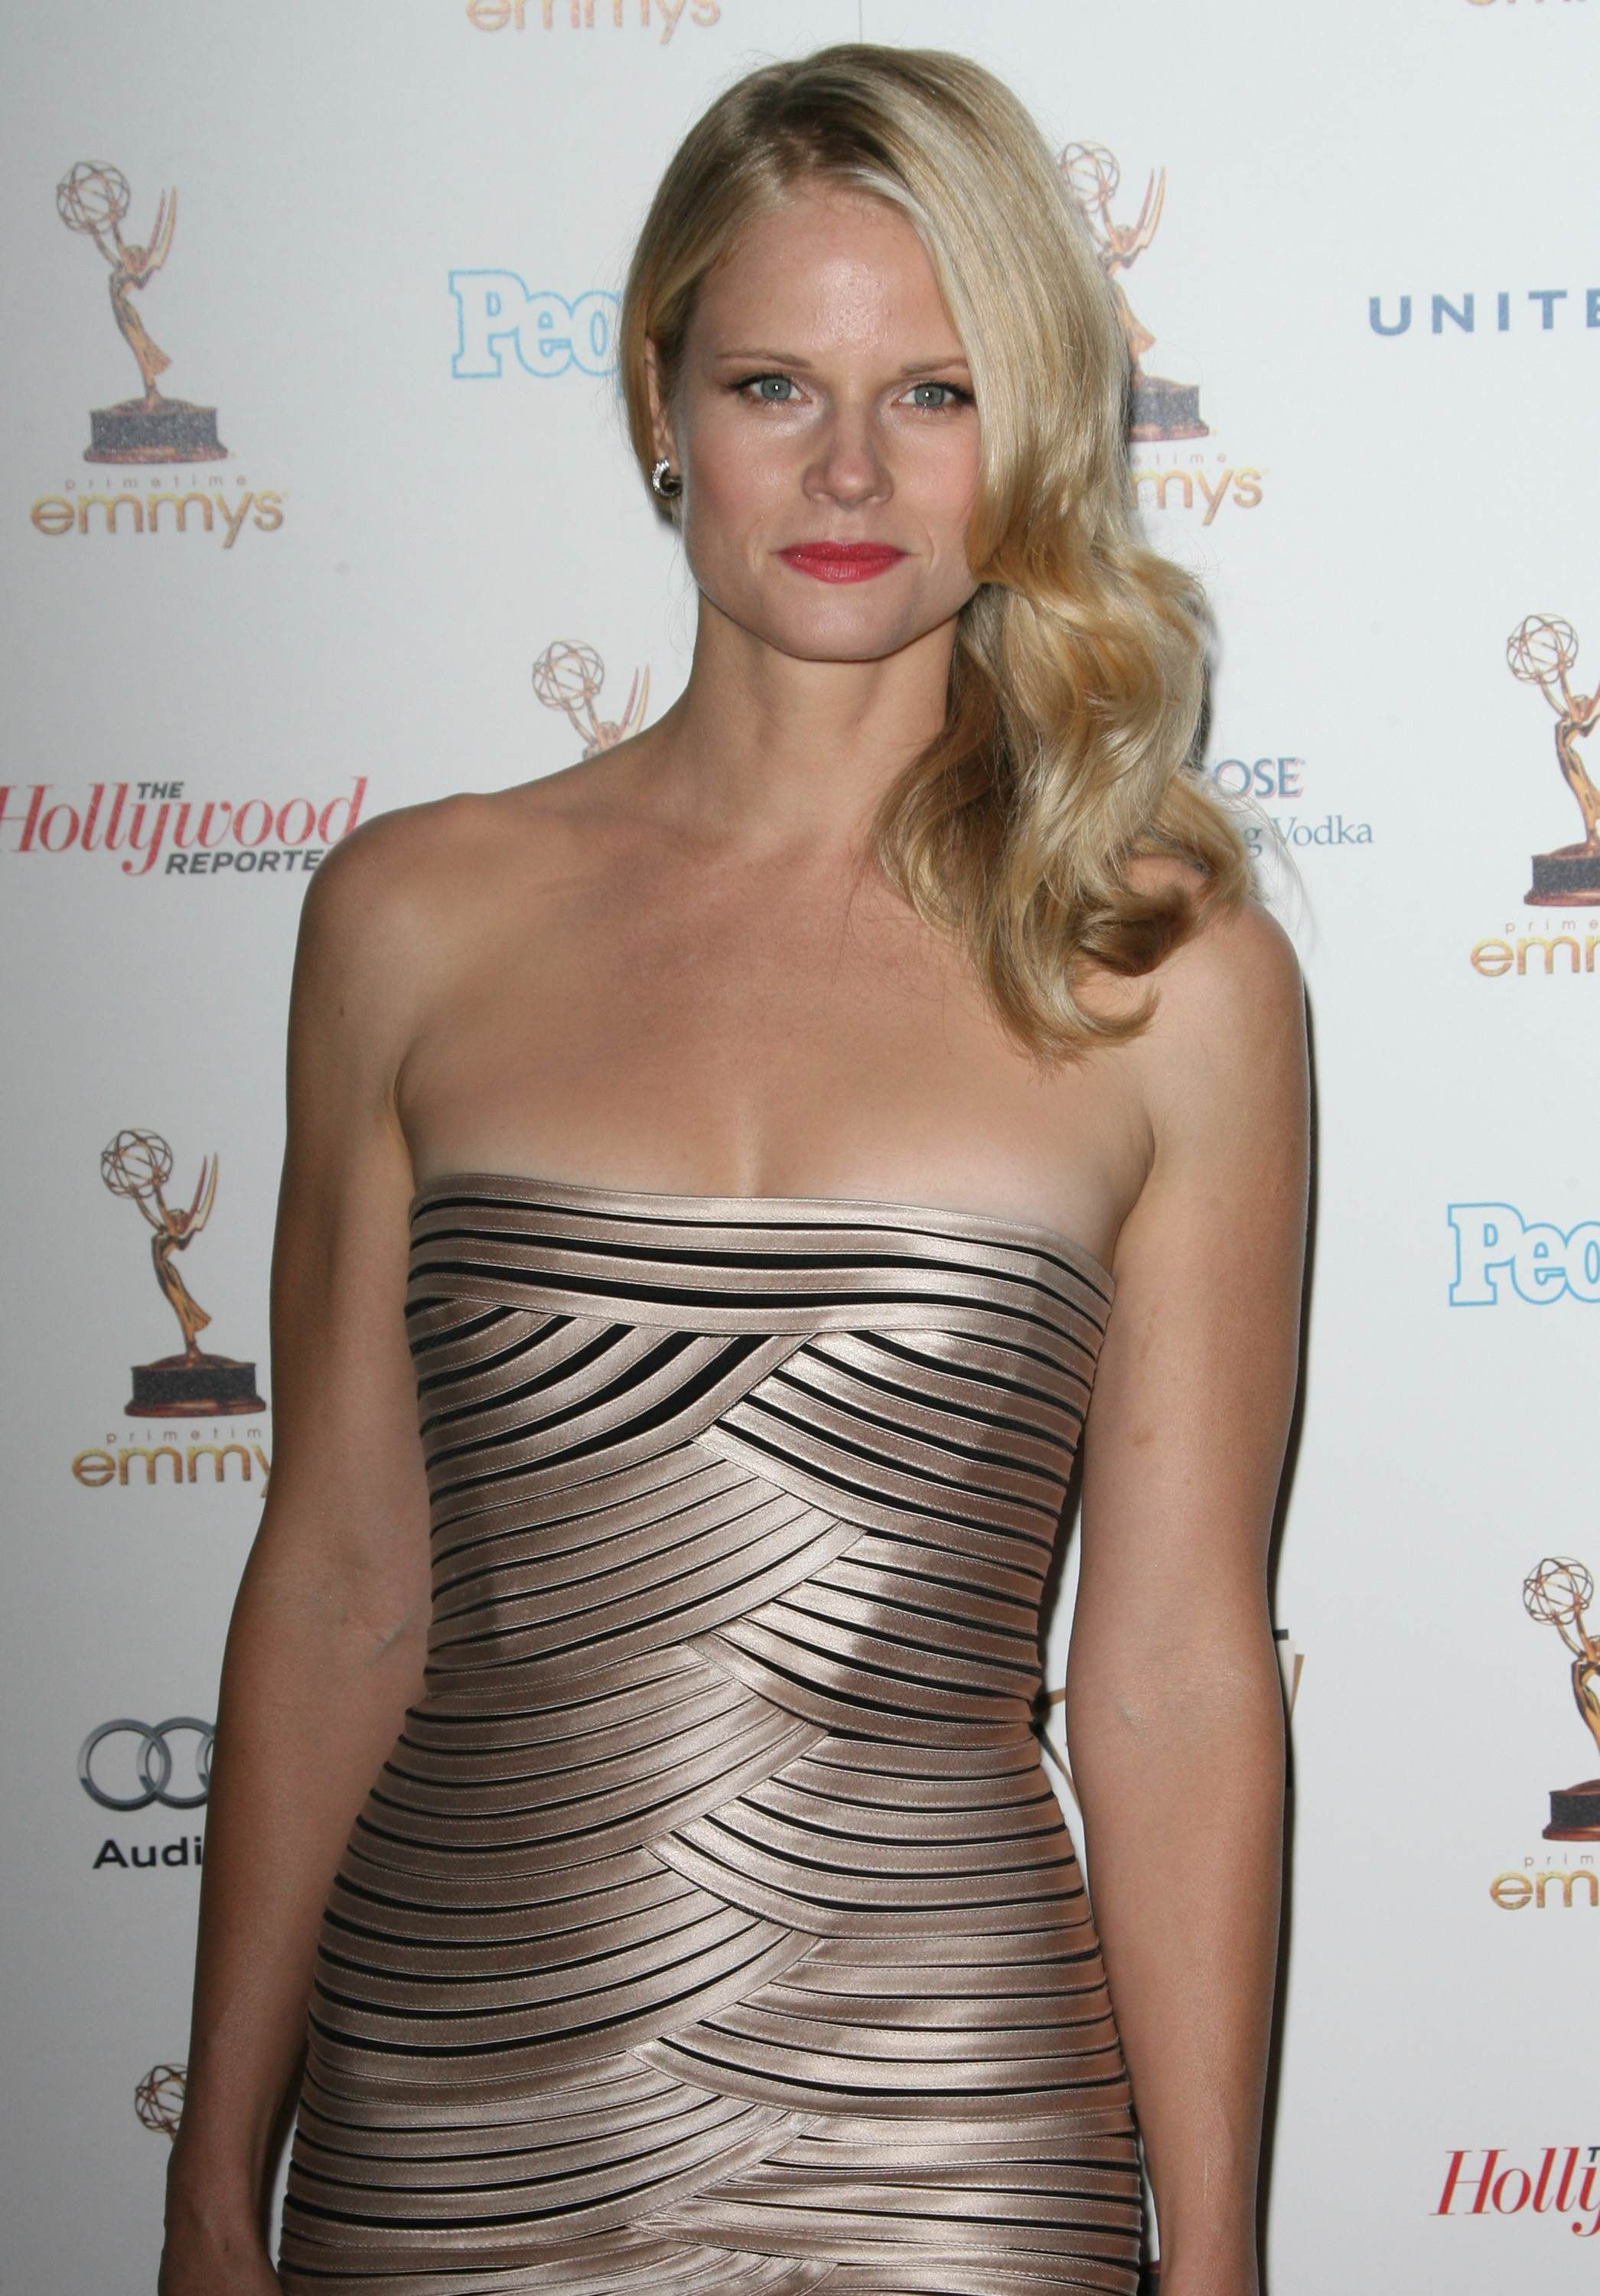 joelle carter height weightjoelle carter twitter, joelle carter photo gallery, joelle carter, joelle carter american pie 2, joelle carter instagram, joelle carter interview, joelle carter net worth, joelle carter imdb, joelle carter bikini, joelle carter measurements, joelle carter sons of anarchy, joelle carter nudography, joelle carter height weight